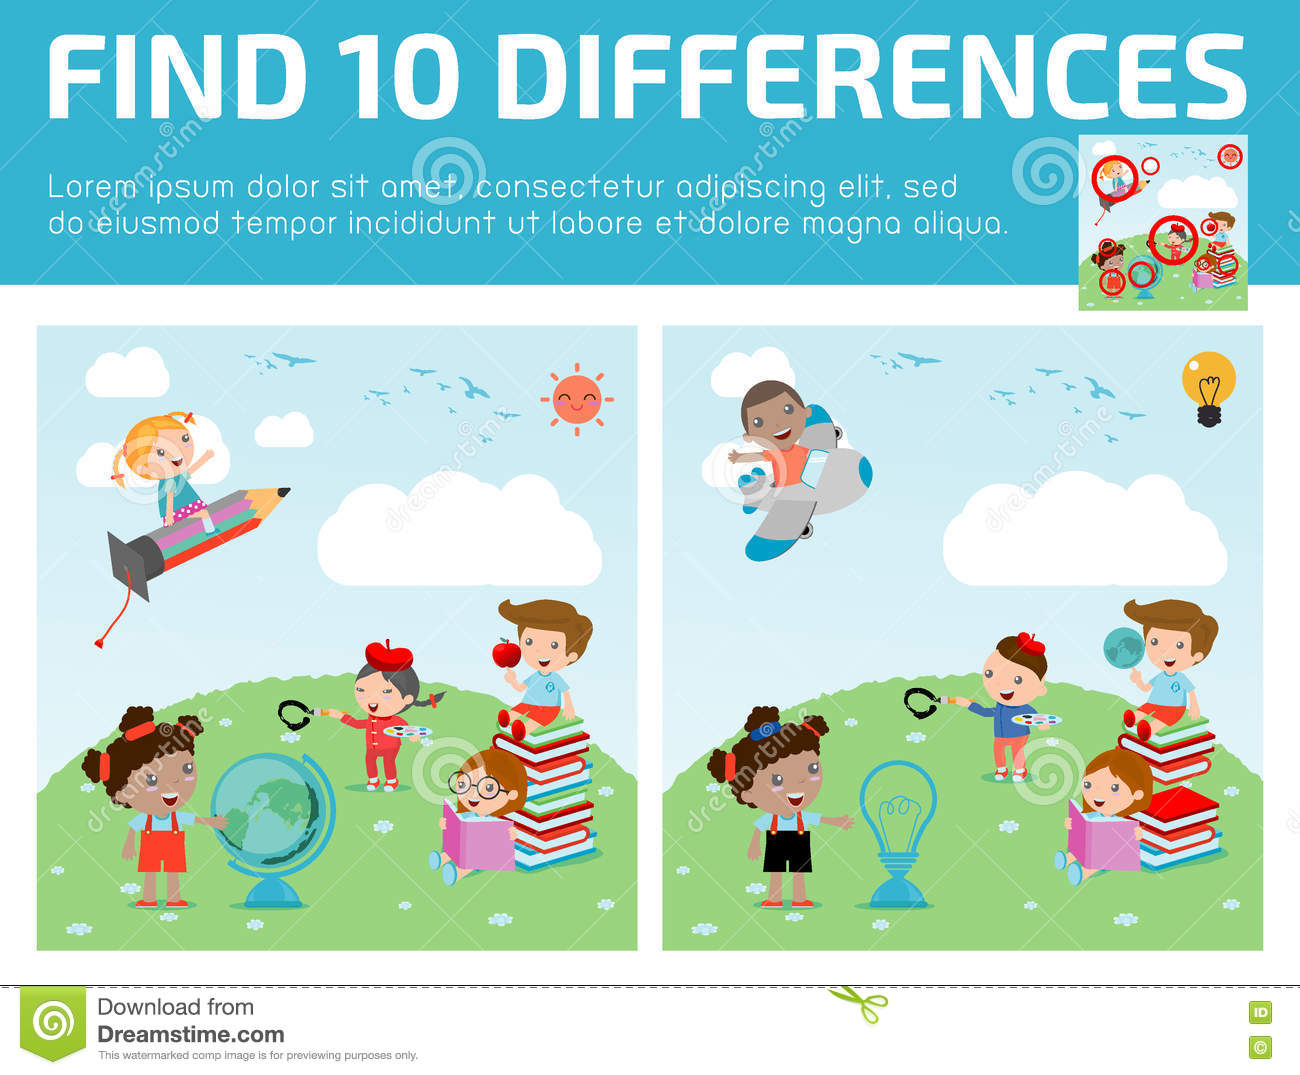 differences and similarities between toddler preschool and school aged children A lesson plan for helping young children learn to accept differences school's anti-bullying policies in an age-relevant manner you will find that children ages.